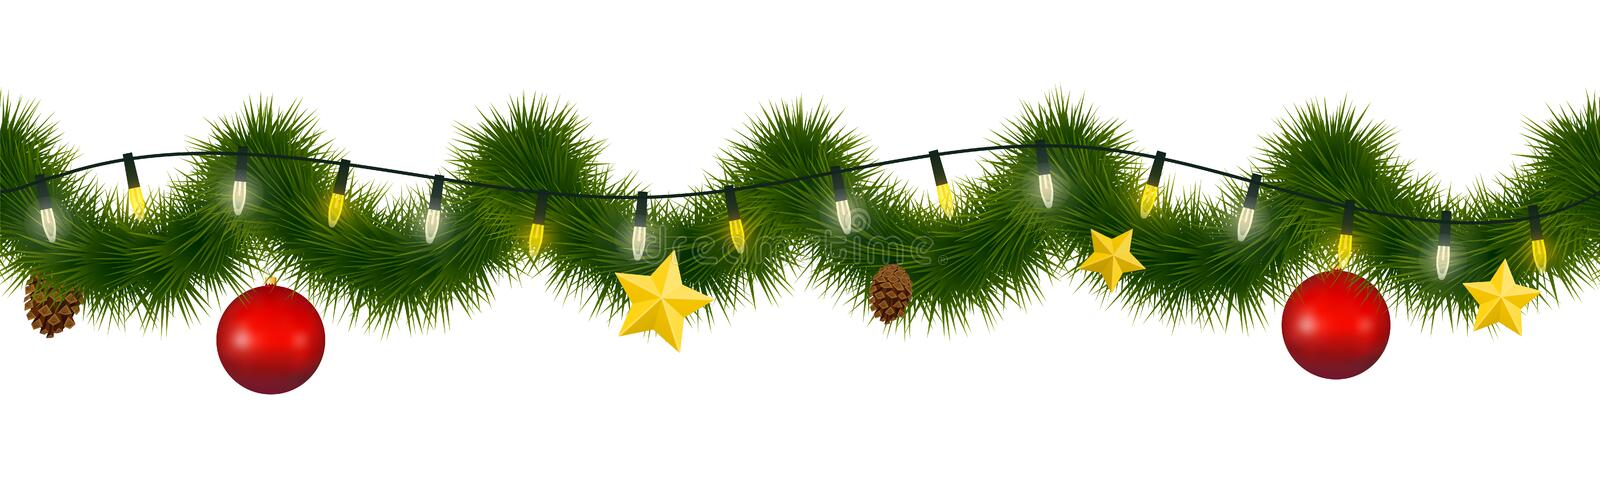 Festive winter garland for websites. Christmas and New Year festoon with coniferous torse, holiday lights, star, glass ornaments a stock illustration